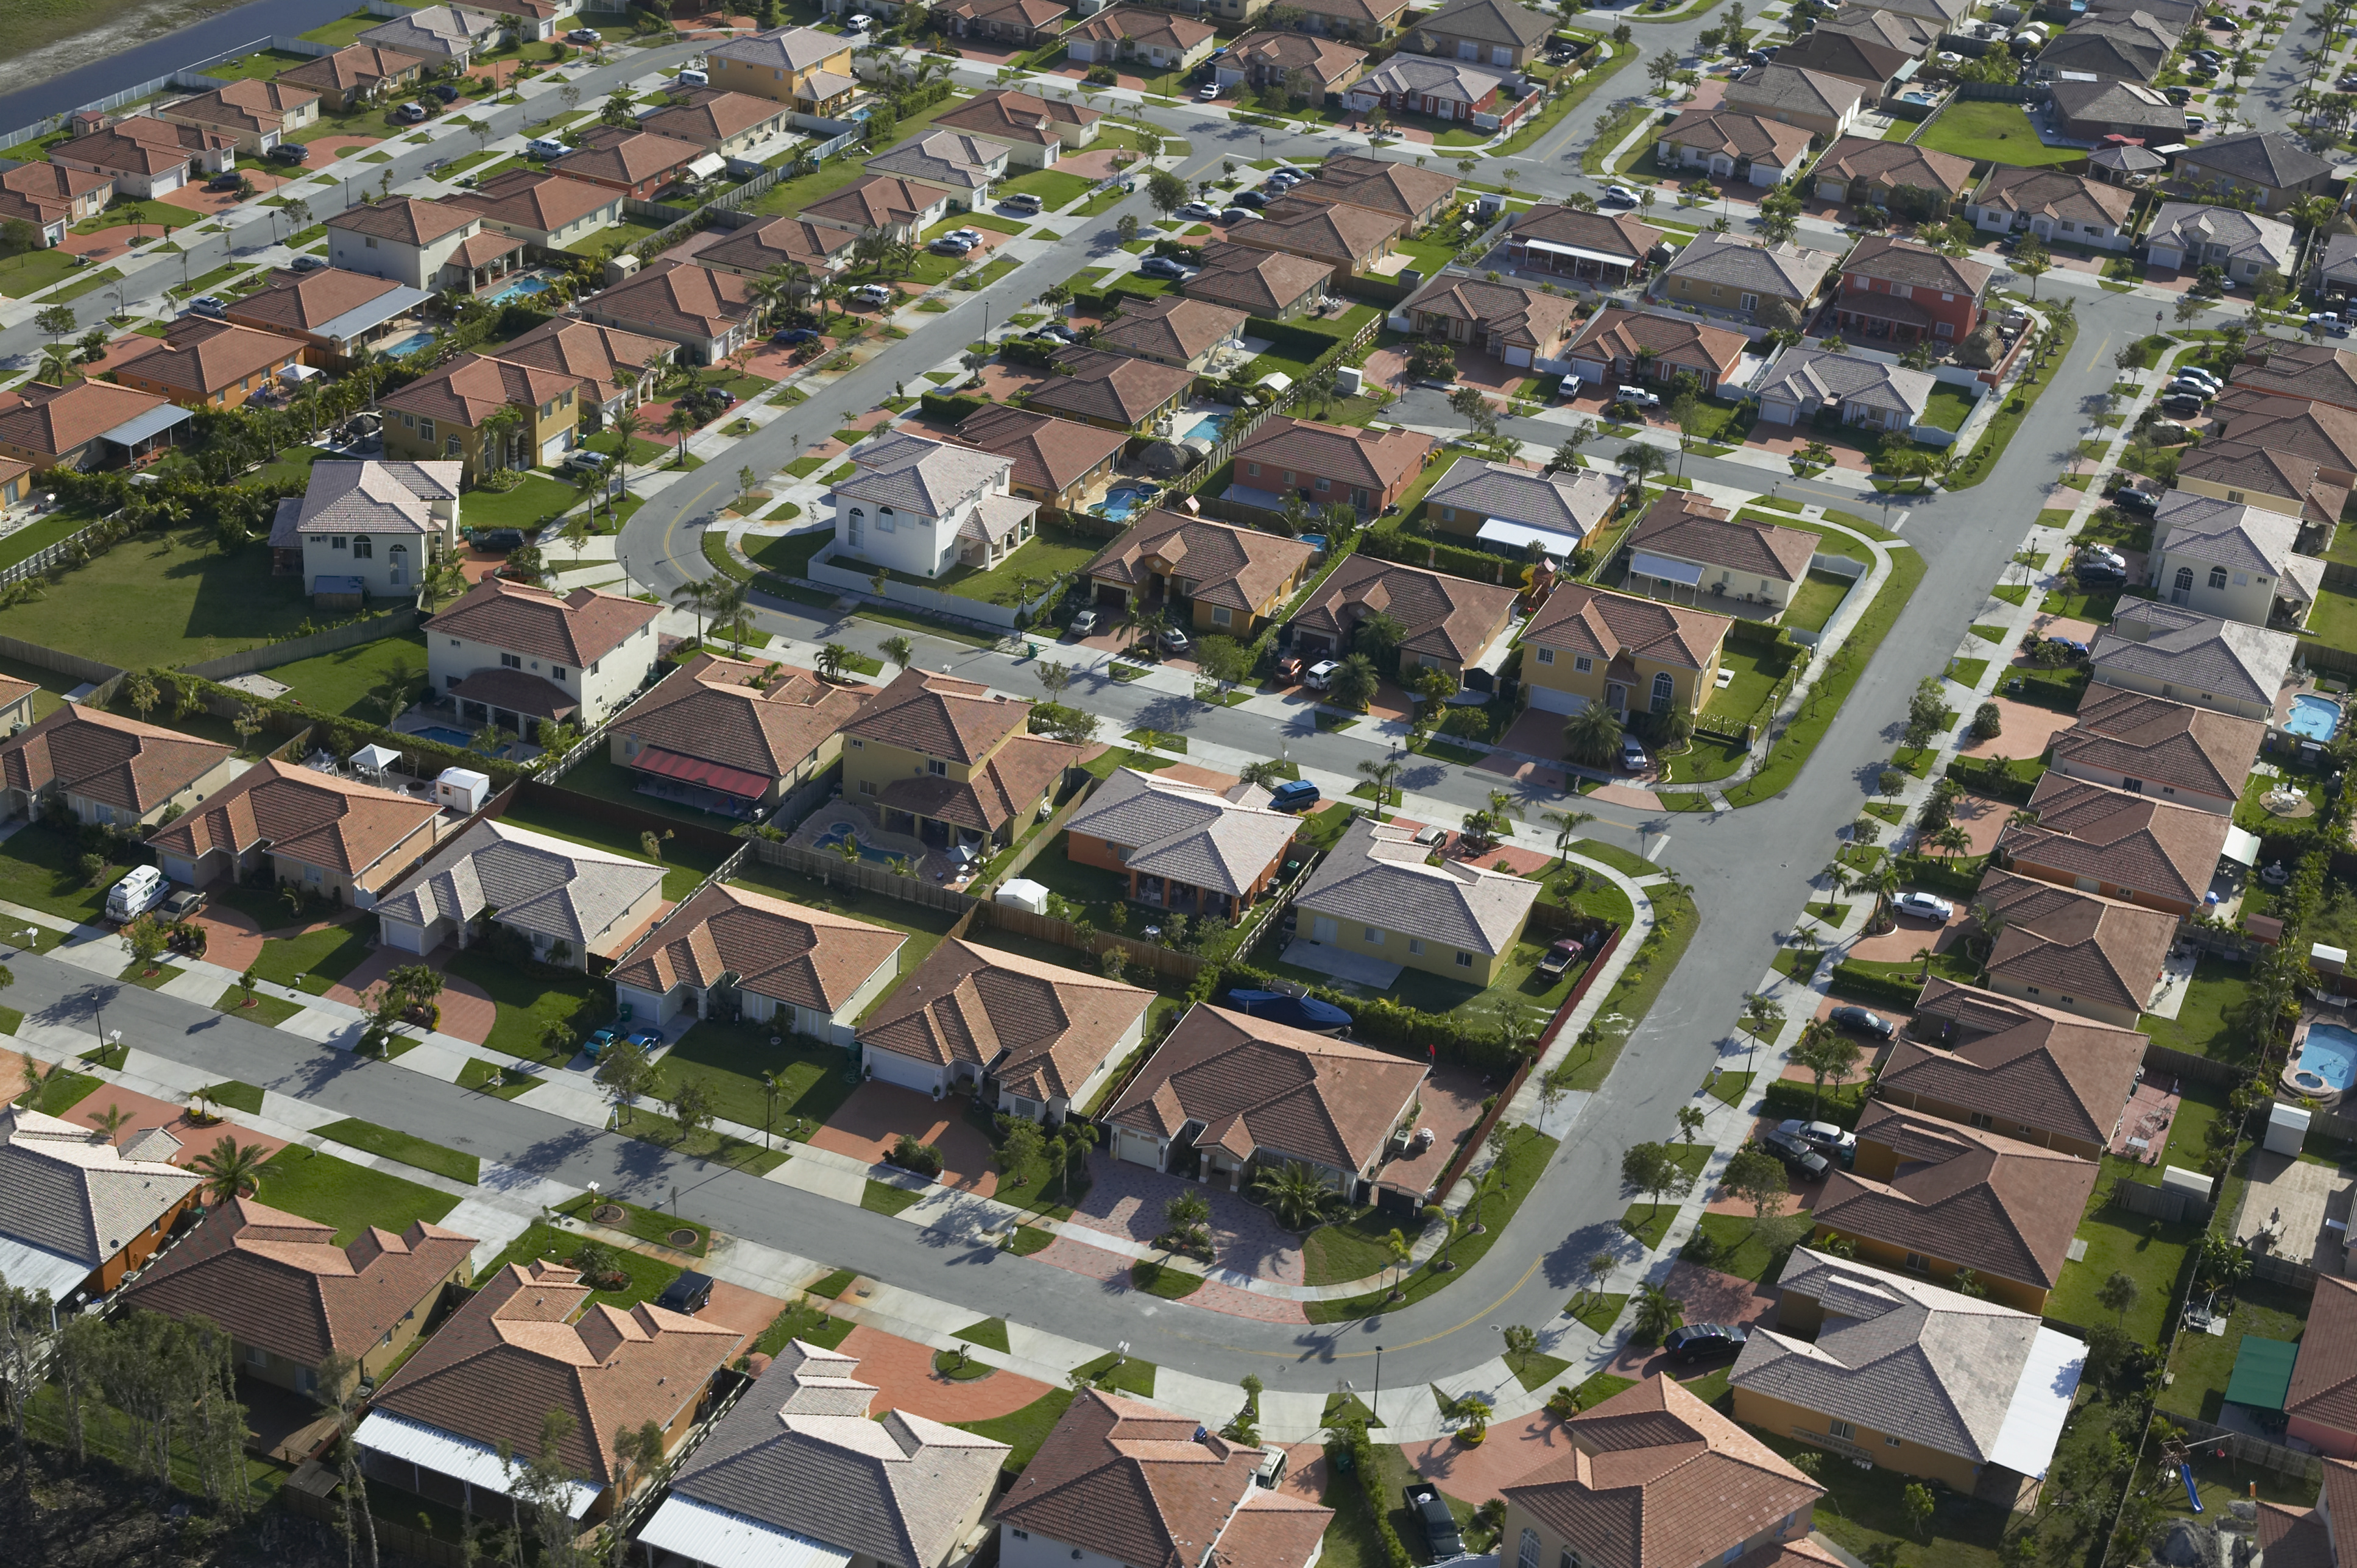 USA, Florida, residential area, aerial view